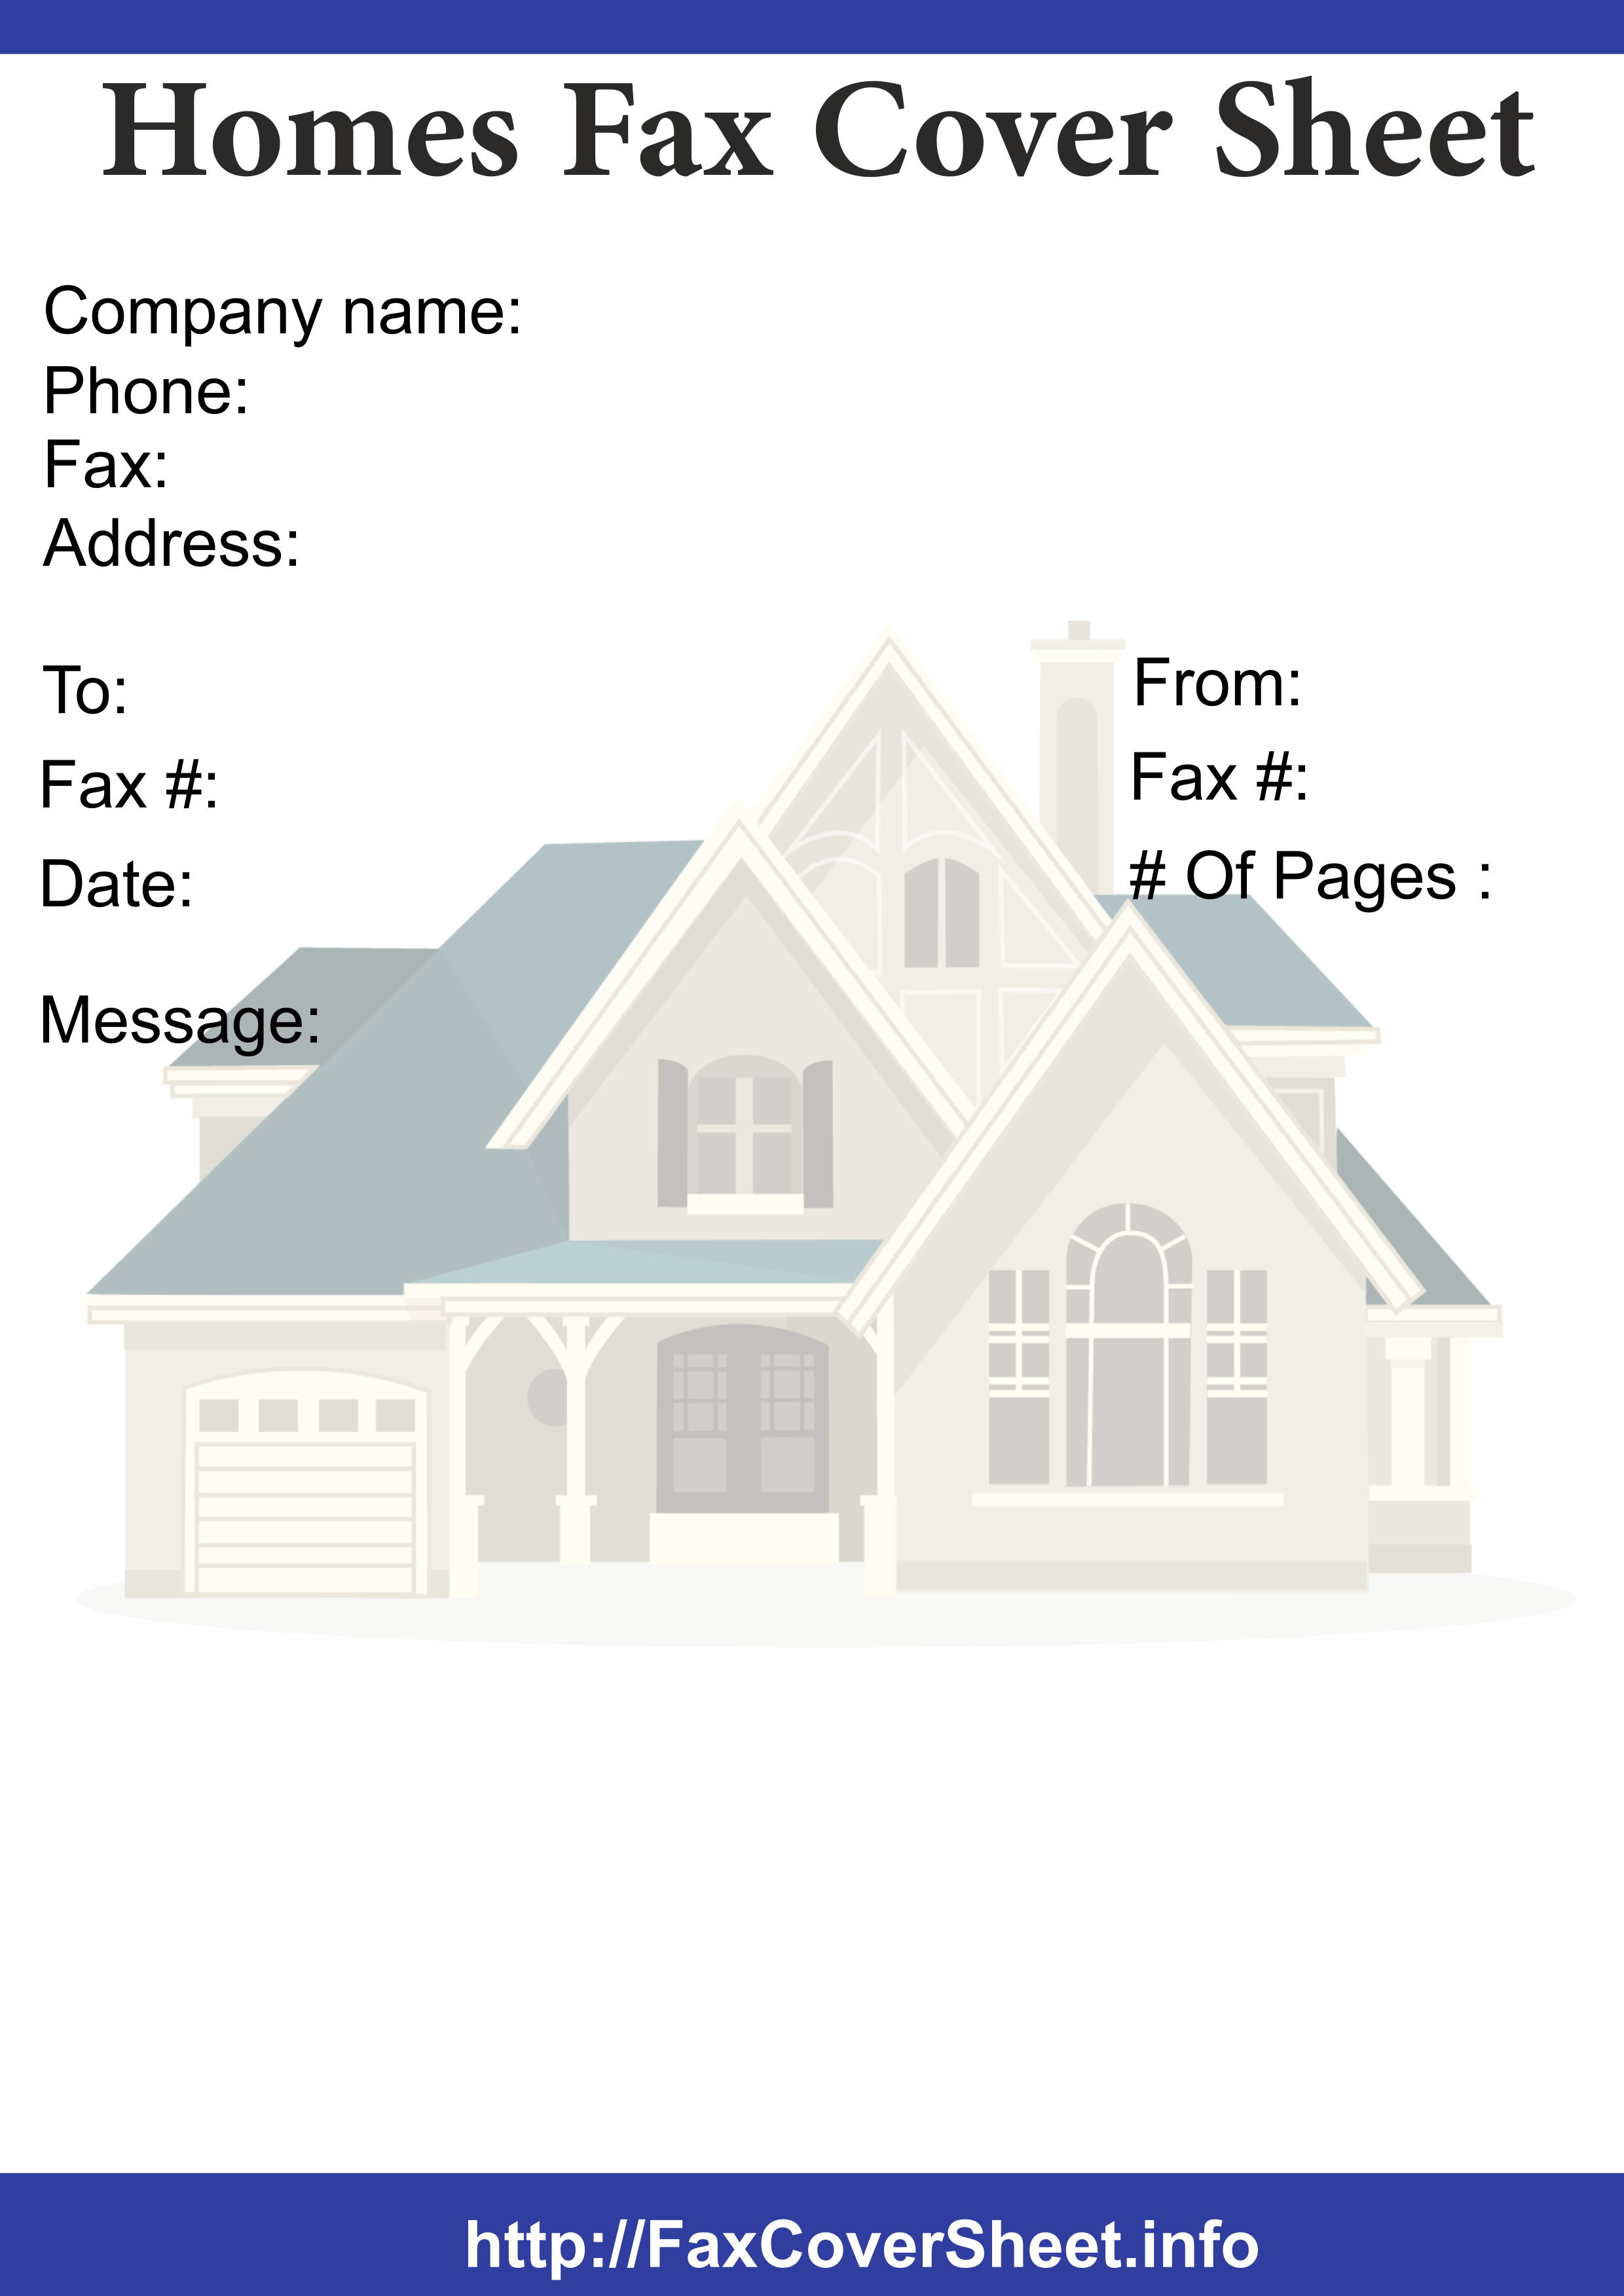 homes fax cover sheet